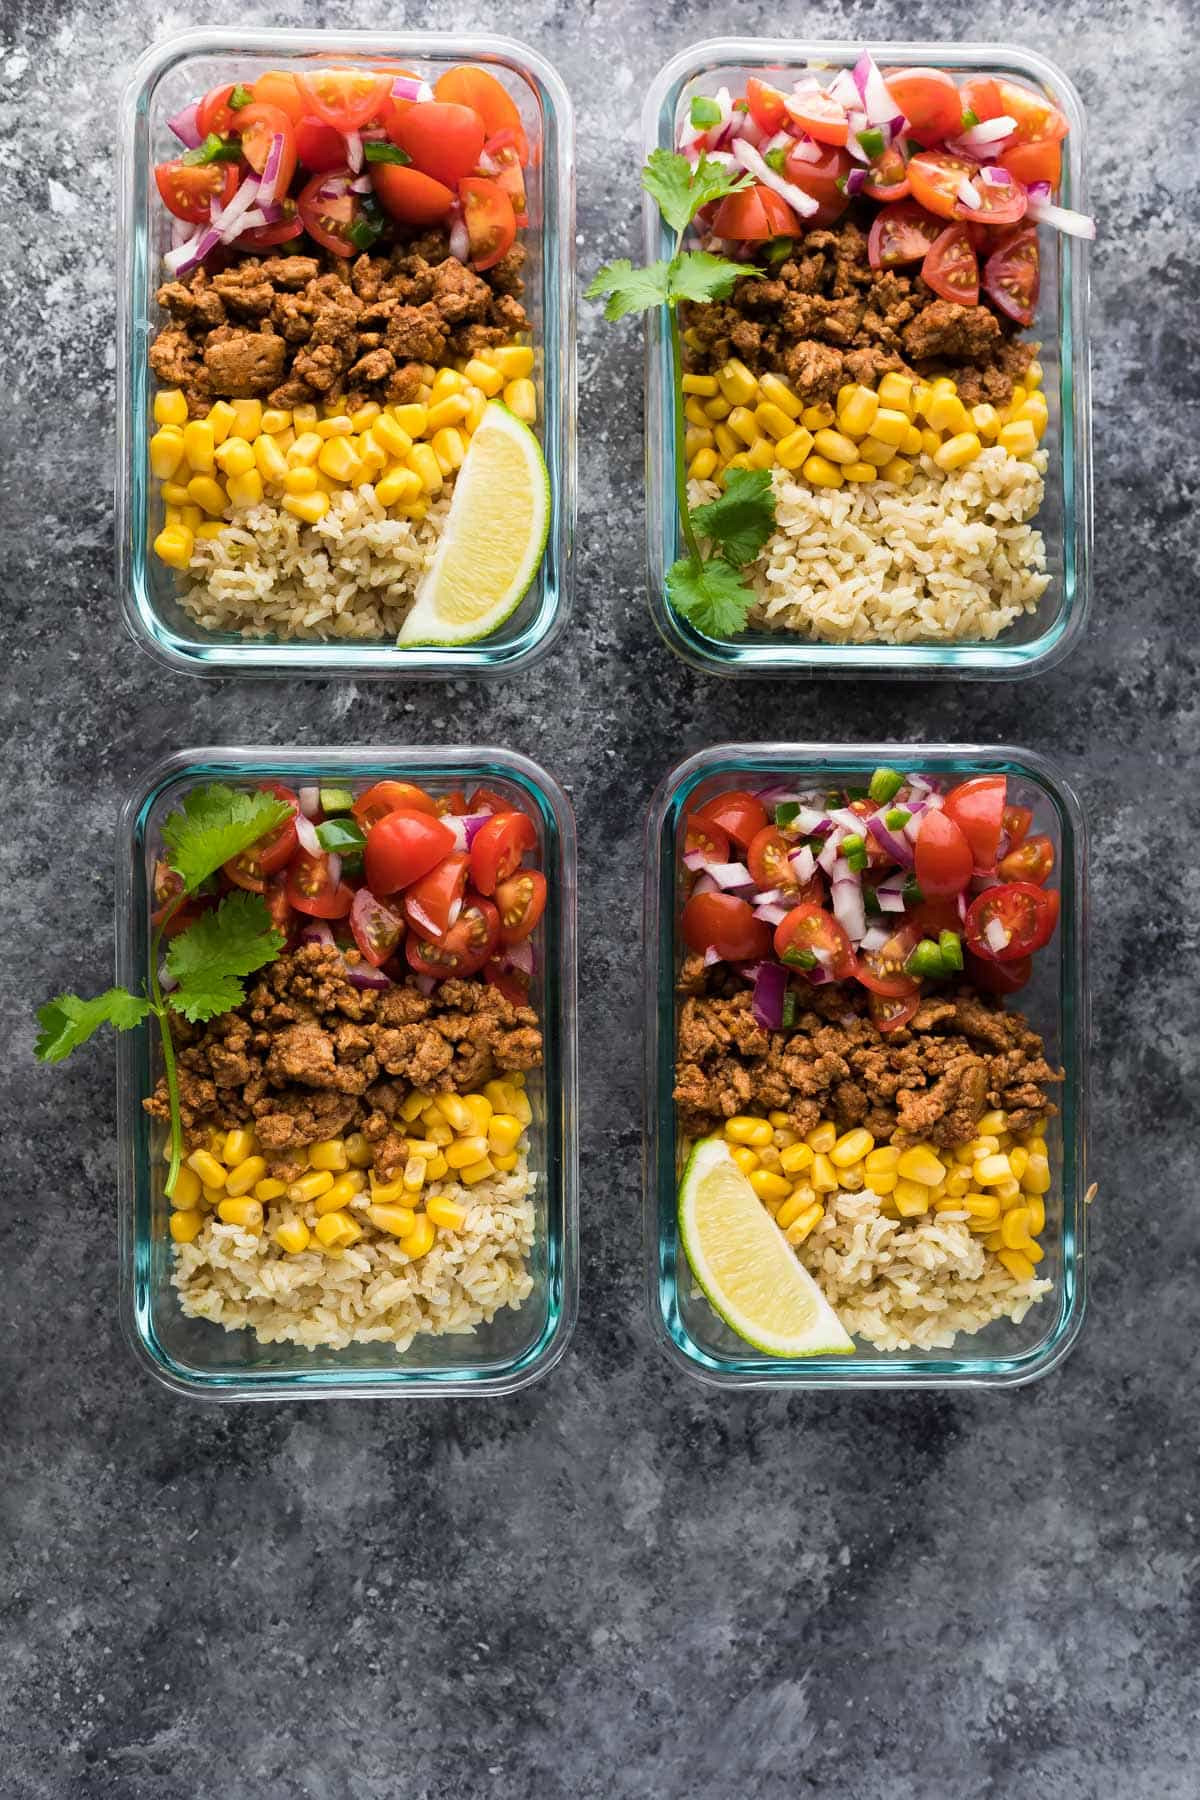 Healthy Meal Prep Lunches  Turkey Taco Lunch Bowls Meal Prep